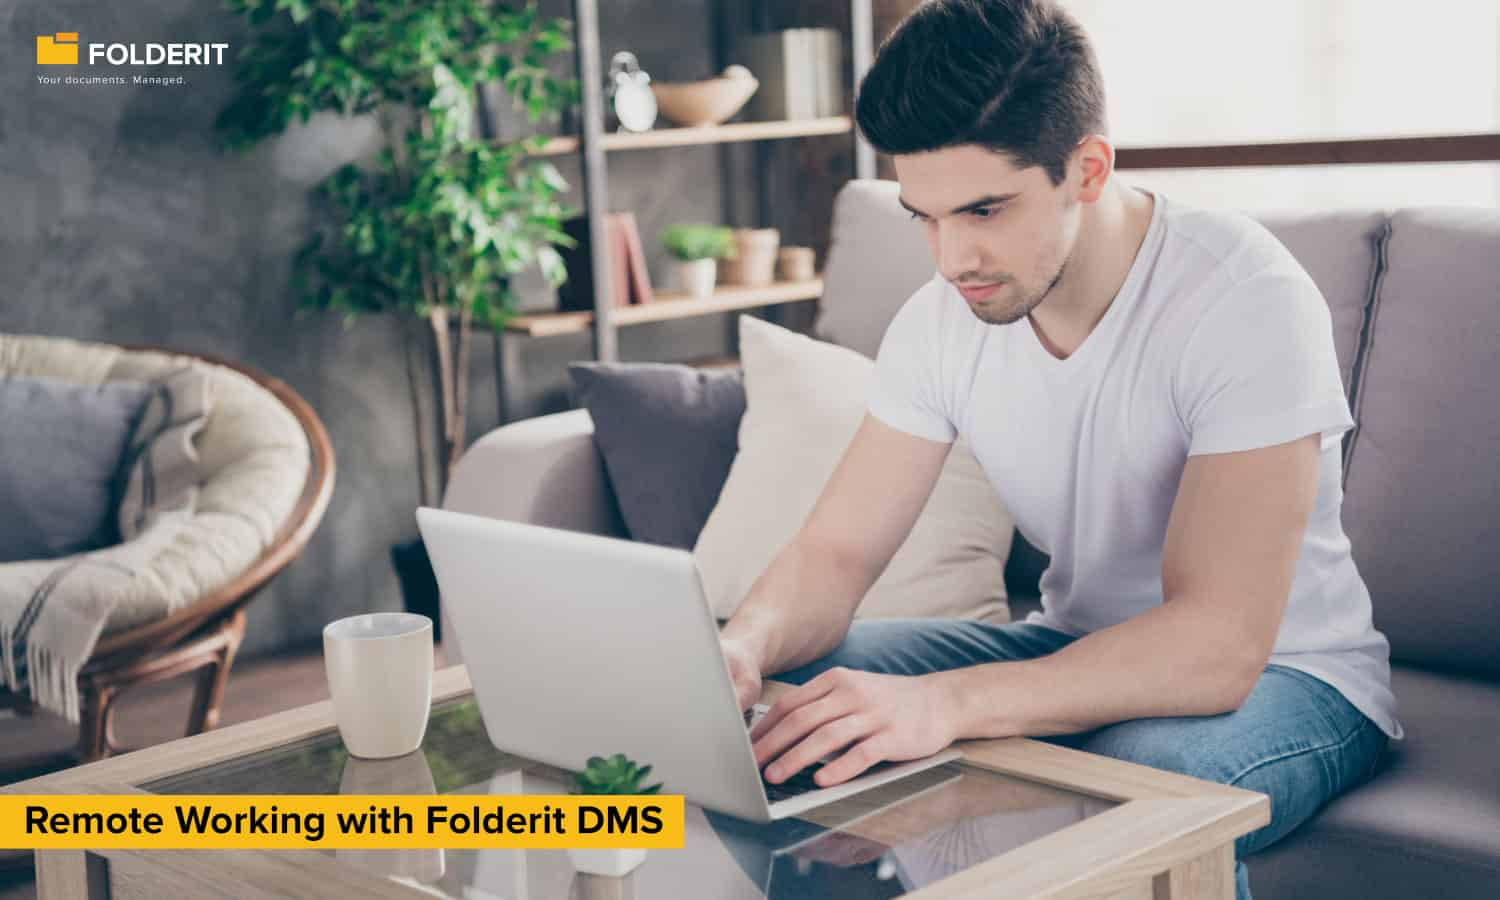 efficient DMS can make traveling unnecessary